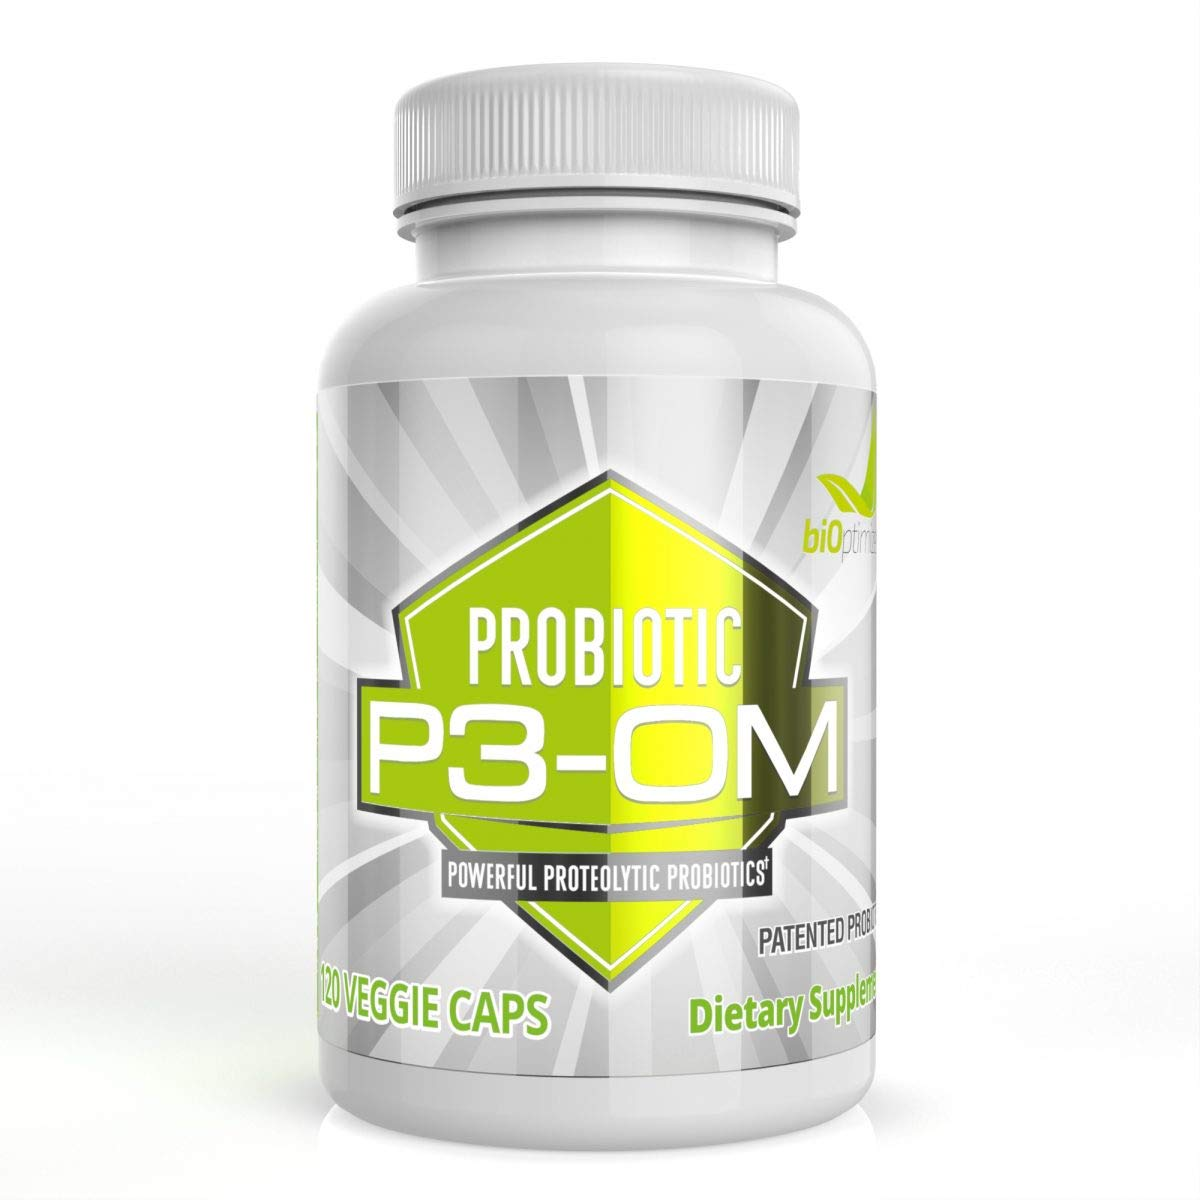 P3-OM - Best Probiotics for Women and Men - Dr. Formulated - No Refrigeration Needed - Patented Single Strain - Boosts Immunity - Supports Digestive Health (120)